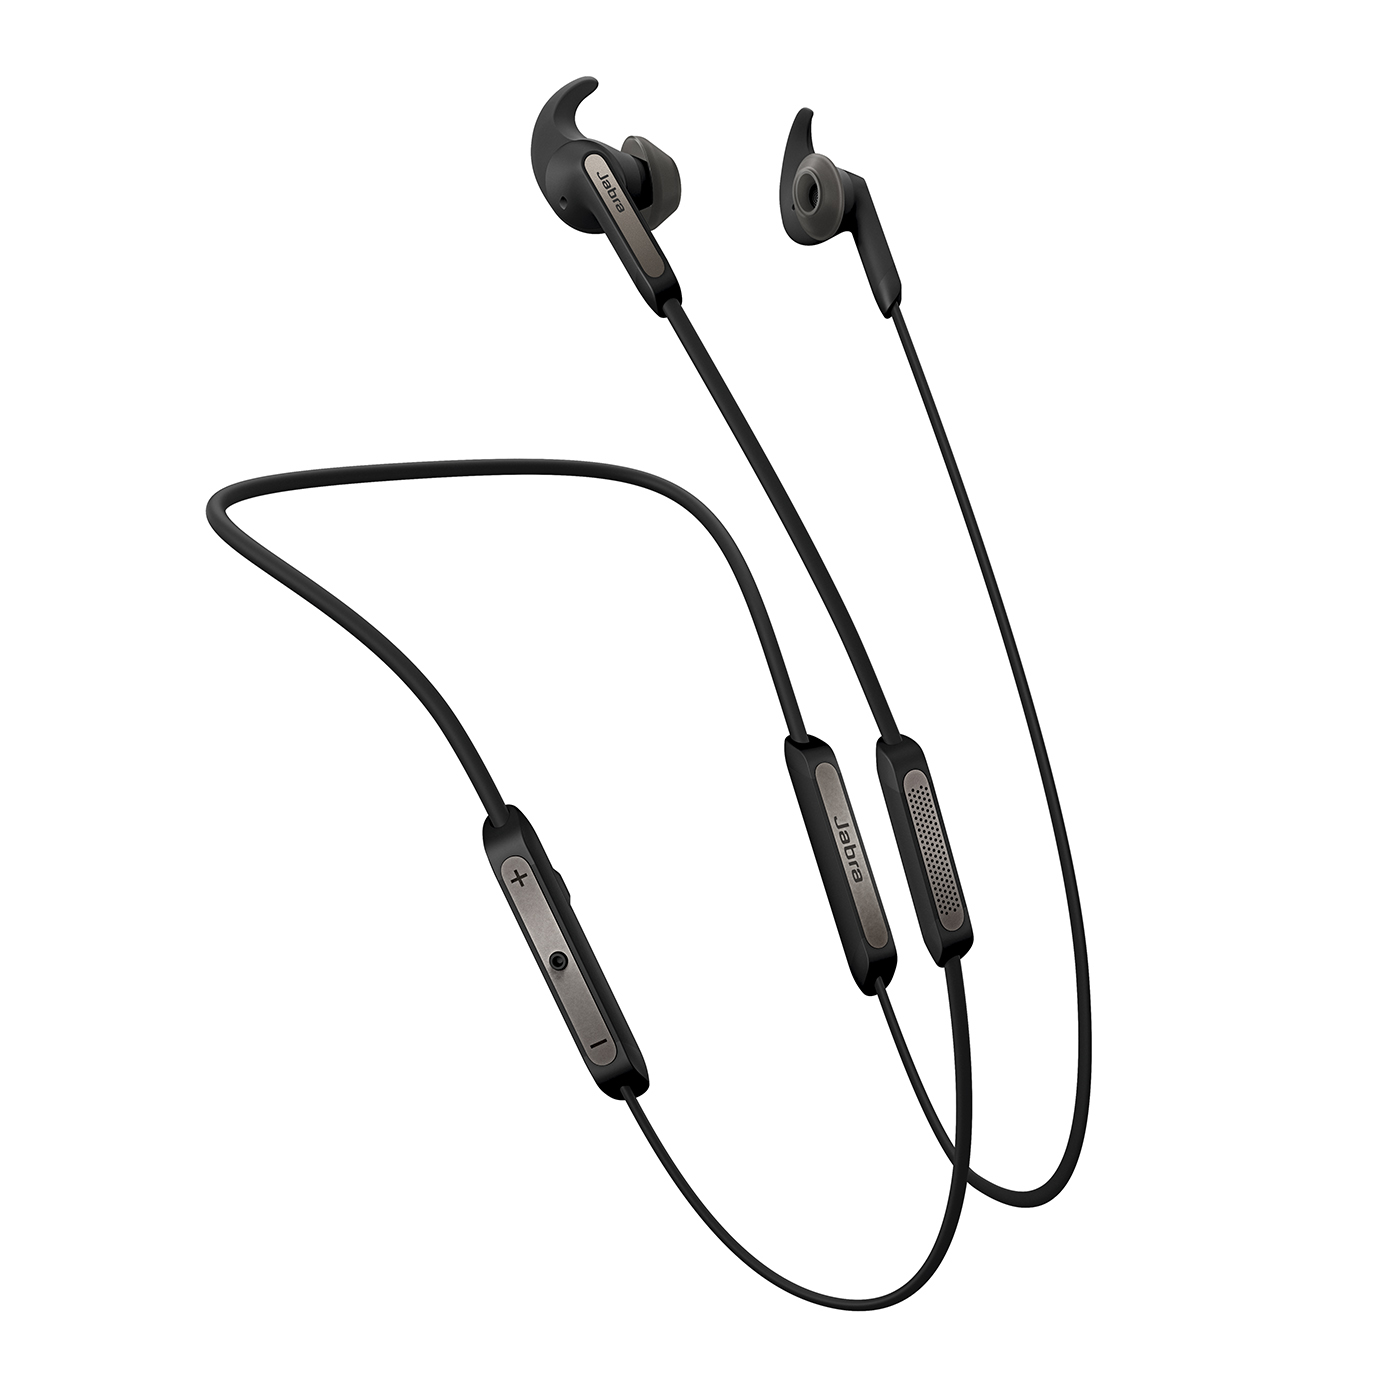 Jabra Elite 45e Wireless Earbuds for Calls and Music (Manufacturer Refurbished)